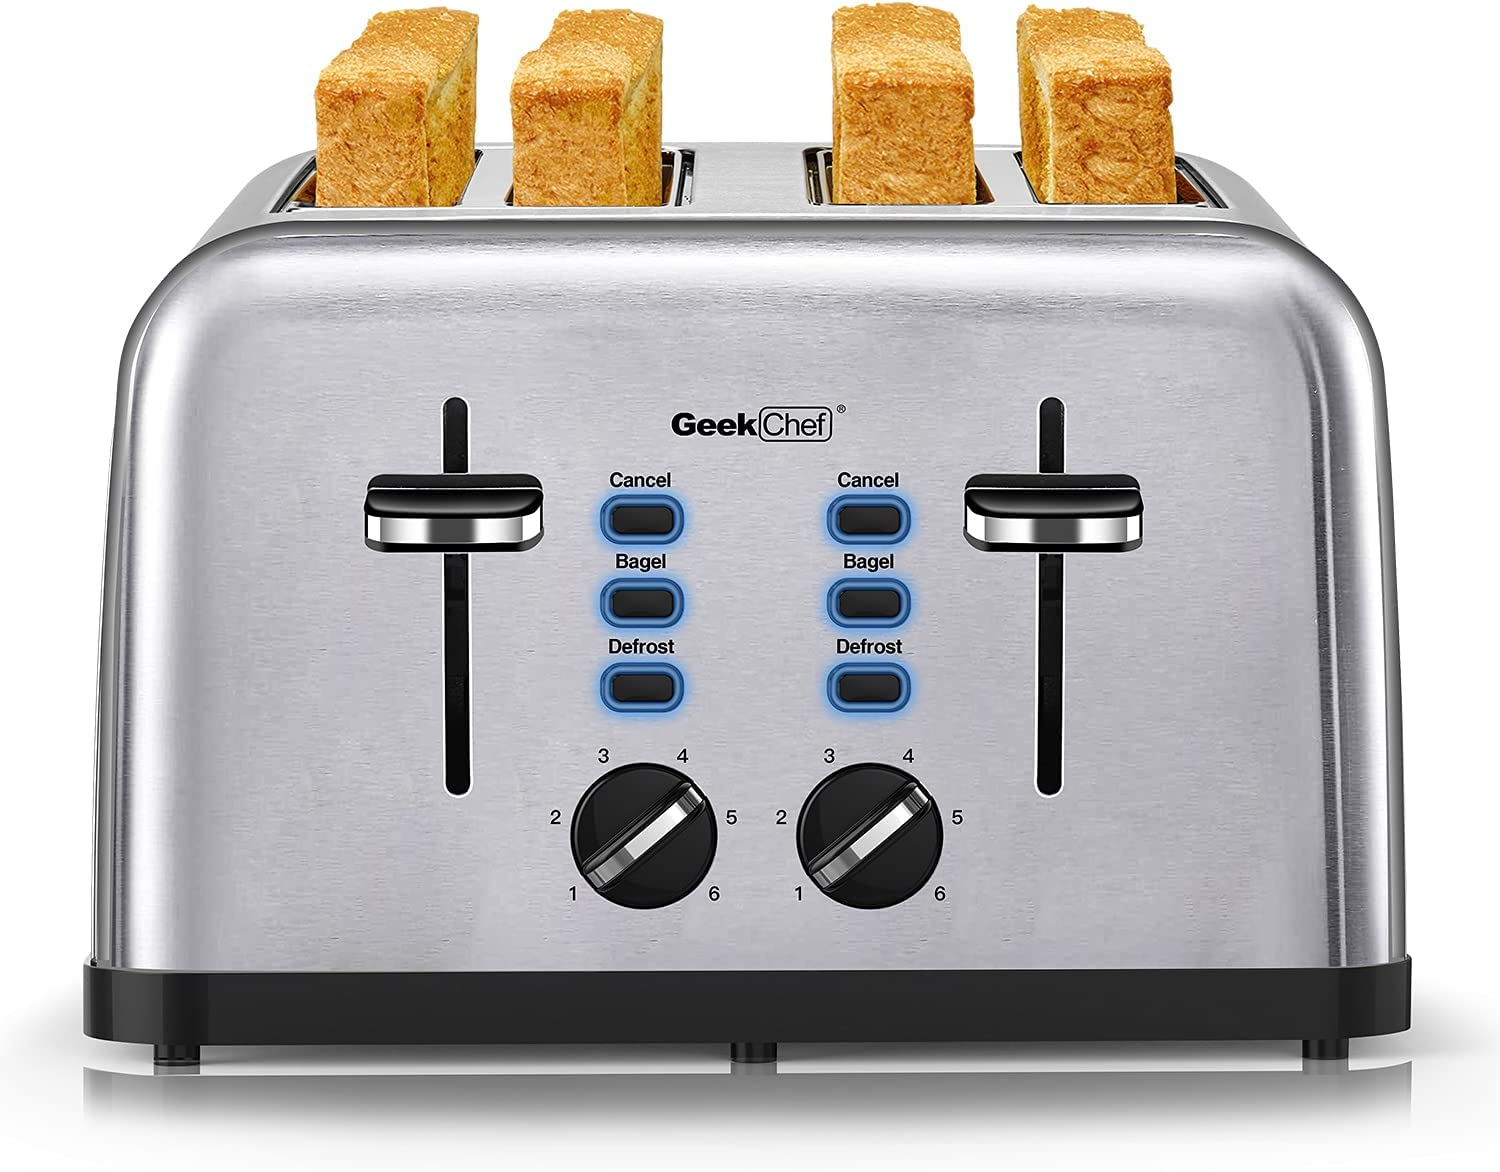 Toaster 4 Slice, Geek Chef Extra Wide Slots Four Slice Toaster, Bagel/Defrost/Cancel Functions, 6 Browning Settings, Removable Crumb Tray, Auto Pop-up, Stainless Steel